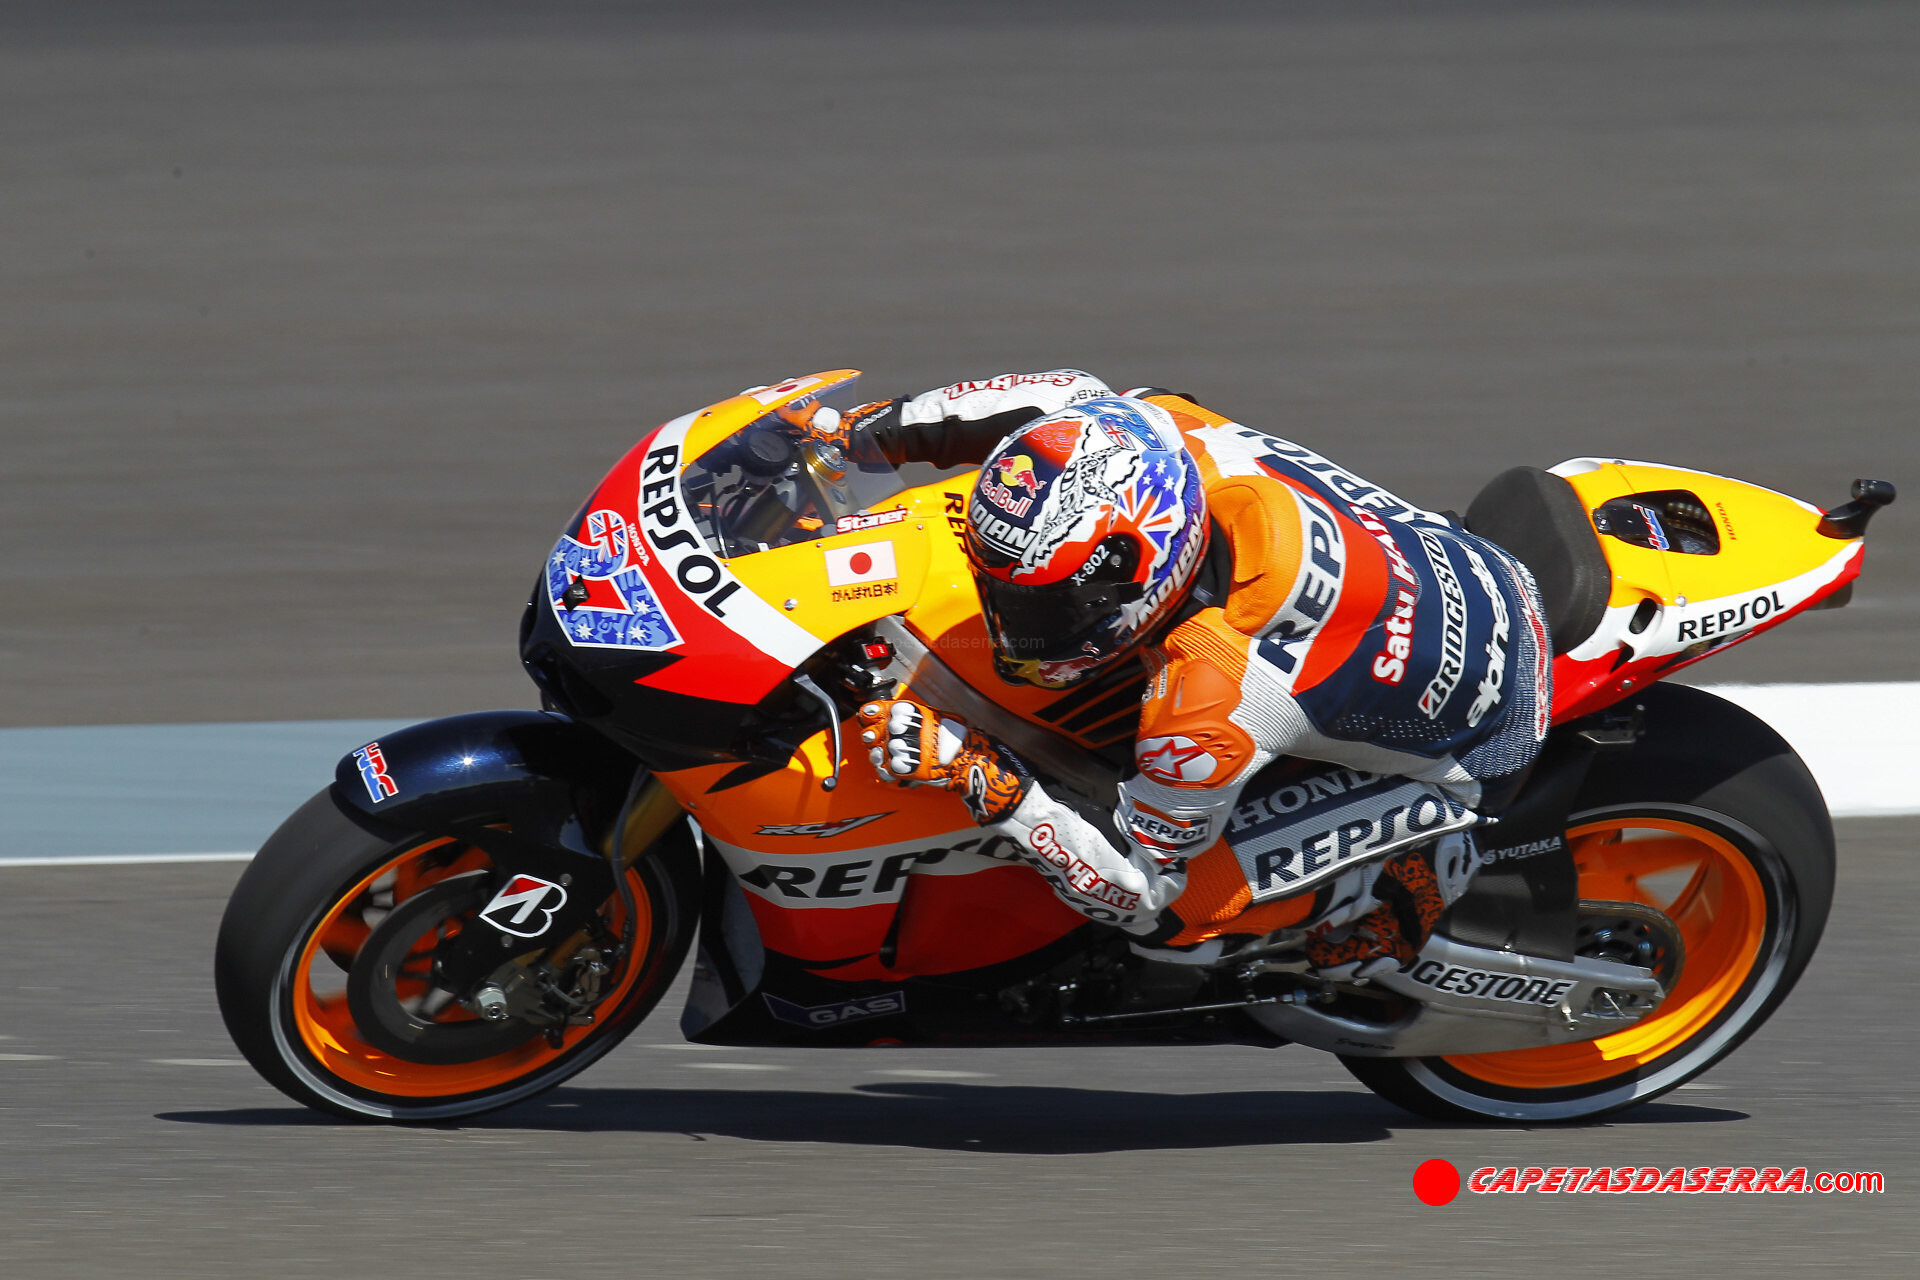 Free Fine Casey Stoner Images on your Computer